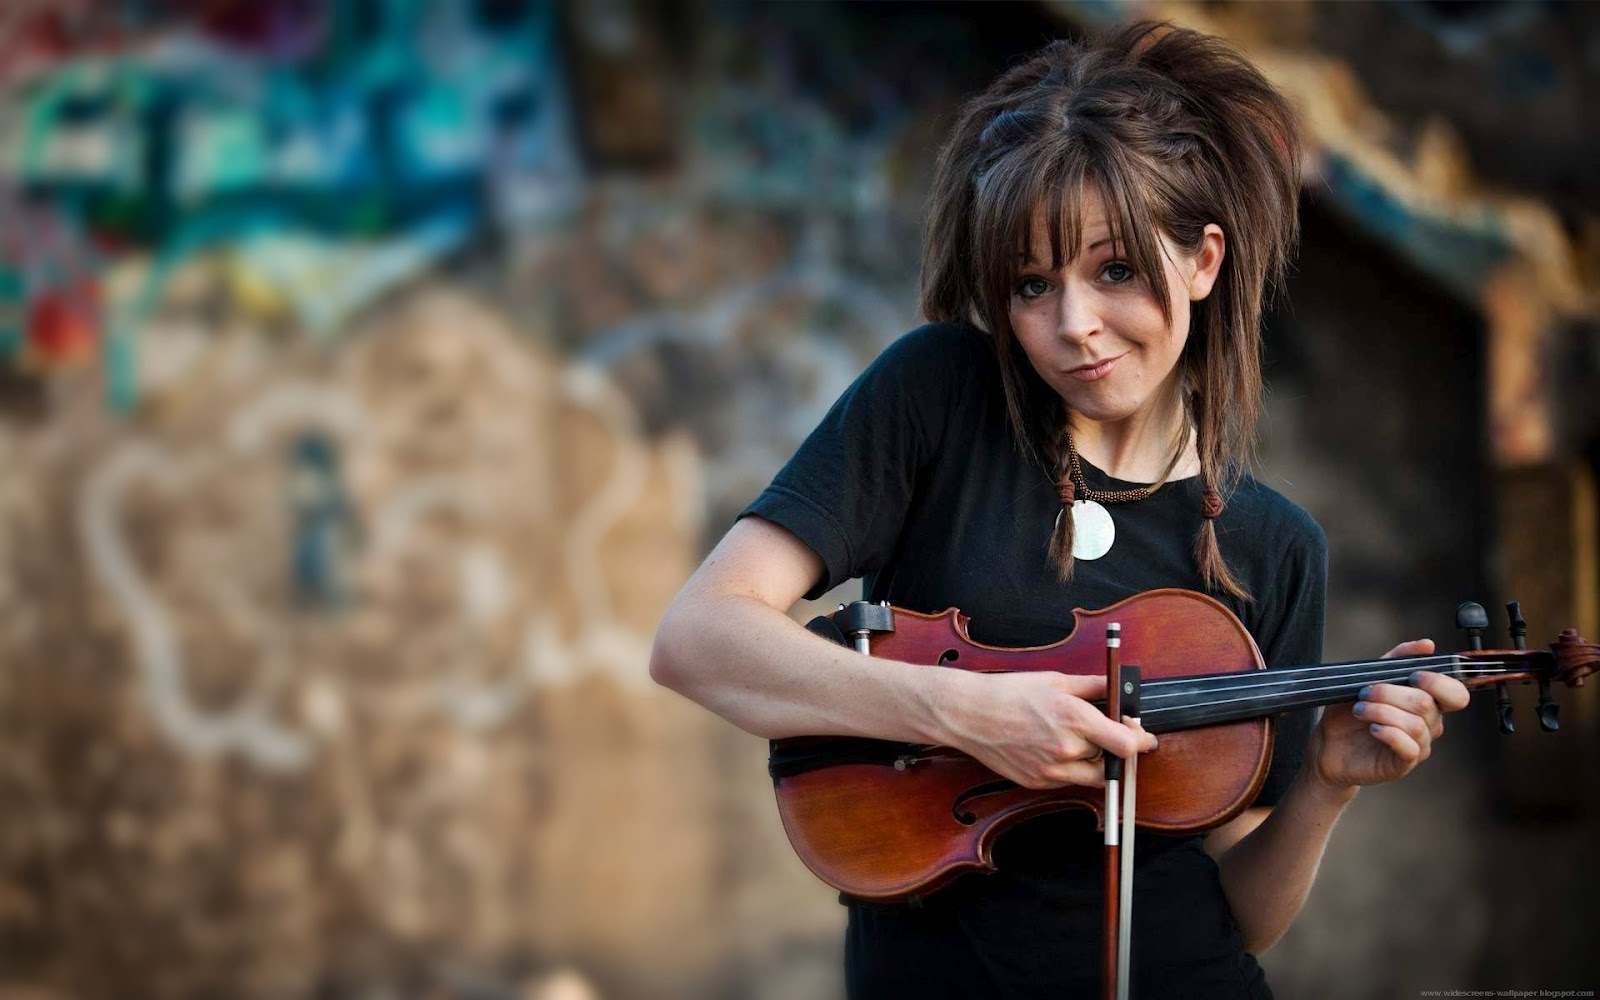 Cute Lindsey Stirling The Violin Girls Wallpapers